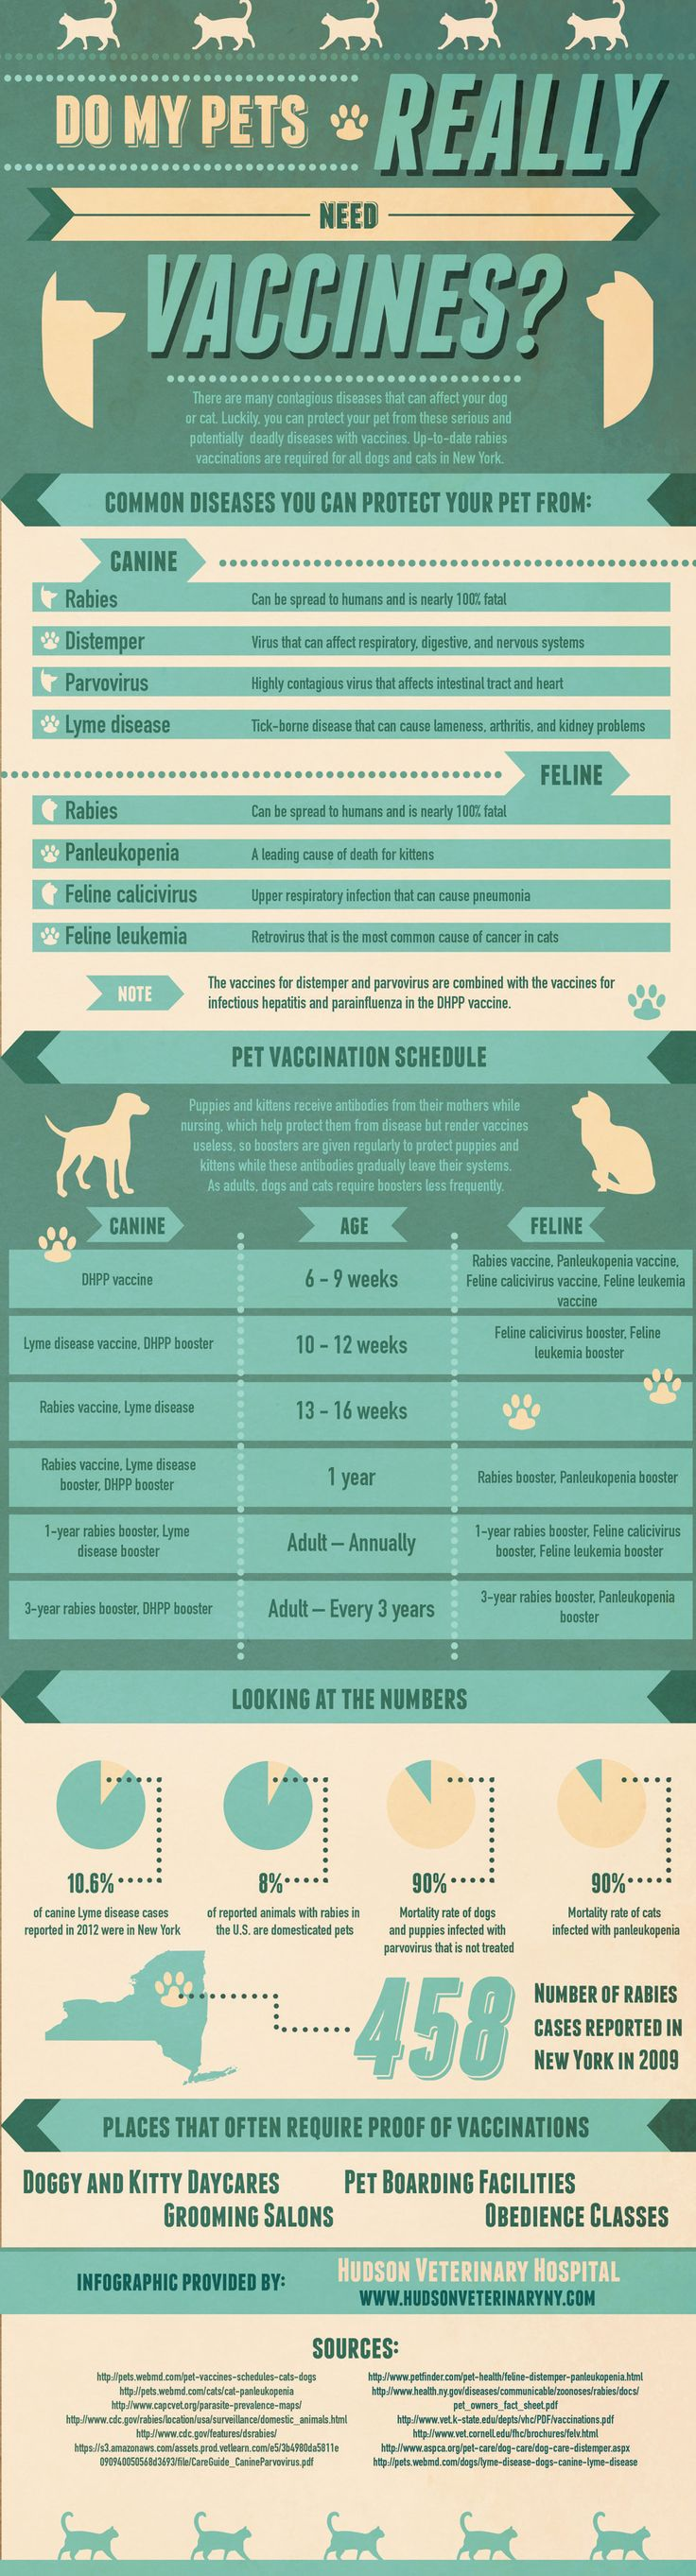 Do My Pets Really Need Vaccines? [Infographic]